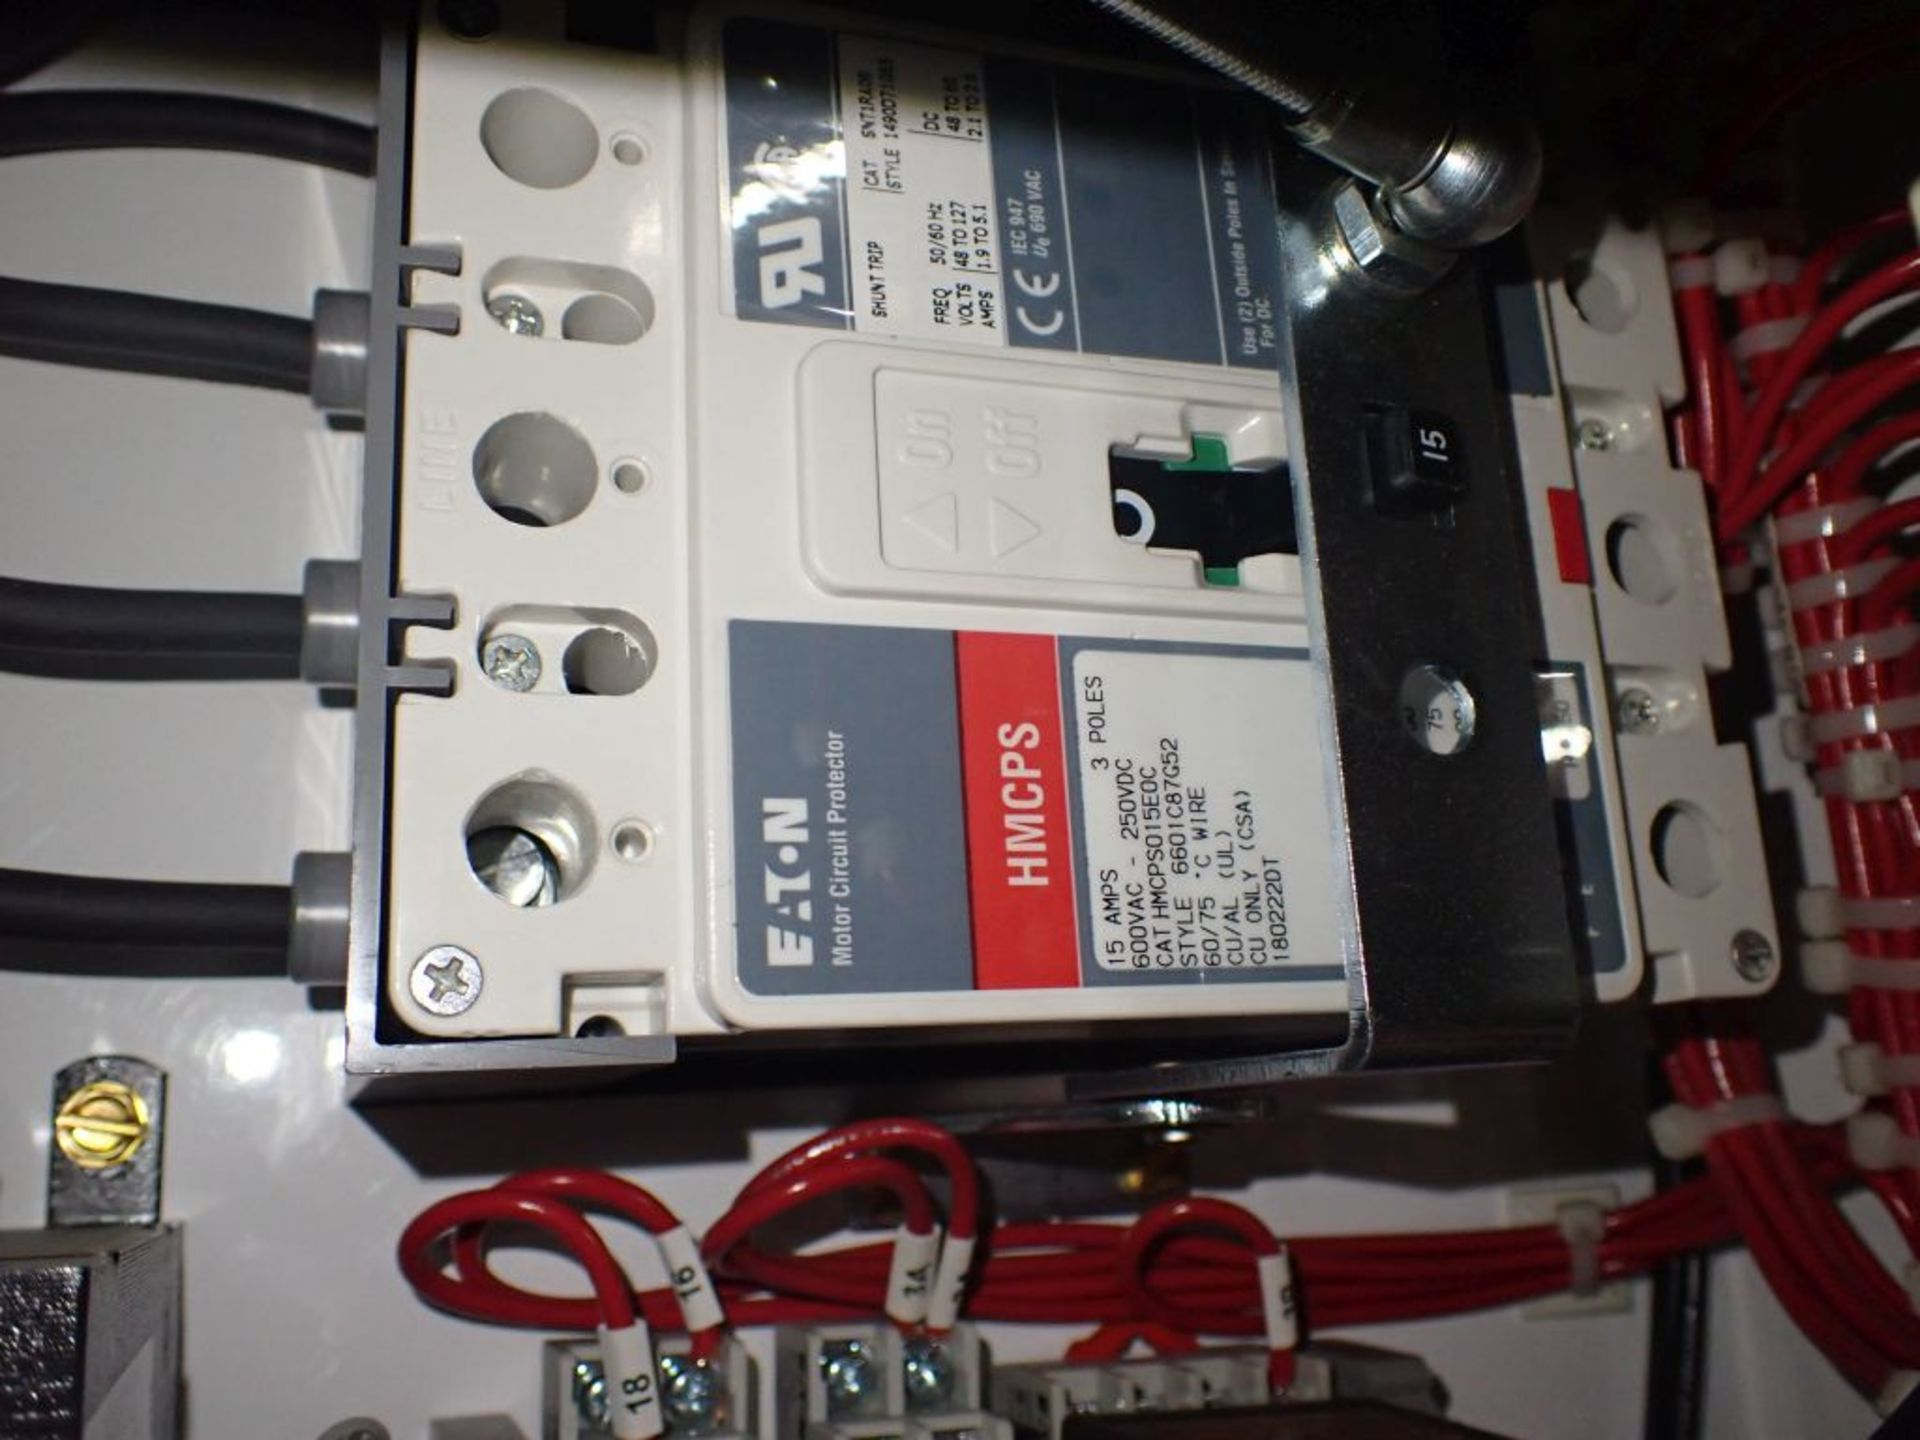 Eaton Freedom 2100 Series Motor Control Center   (2) F206-15A-10HP; (2) SVX900-50A, with Eaton AF - Image 34 of 48